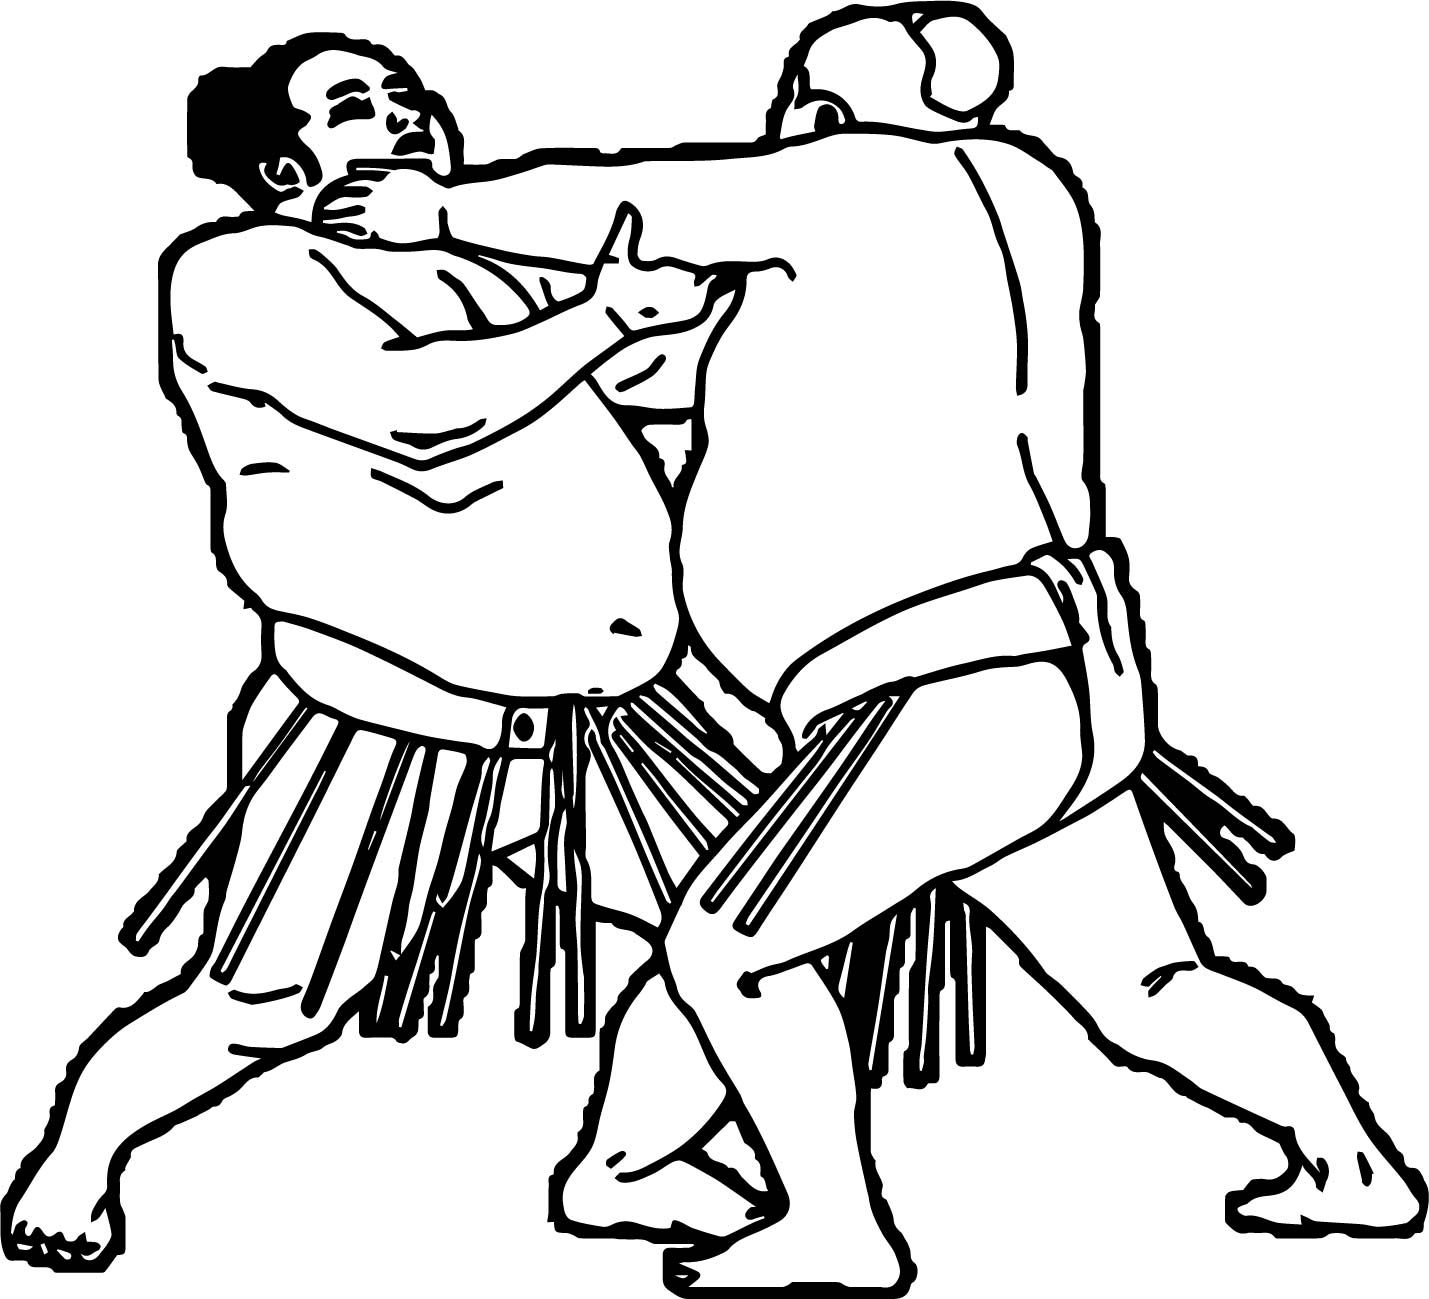 1429x1299 Sport Fight Graphics Sumo Wrestling Coloring Page Wecoloringpage